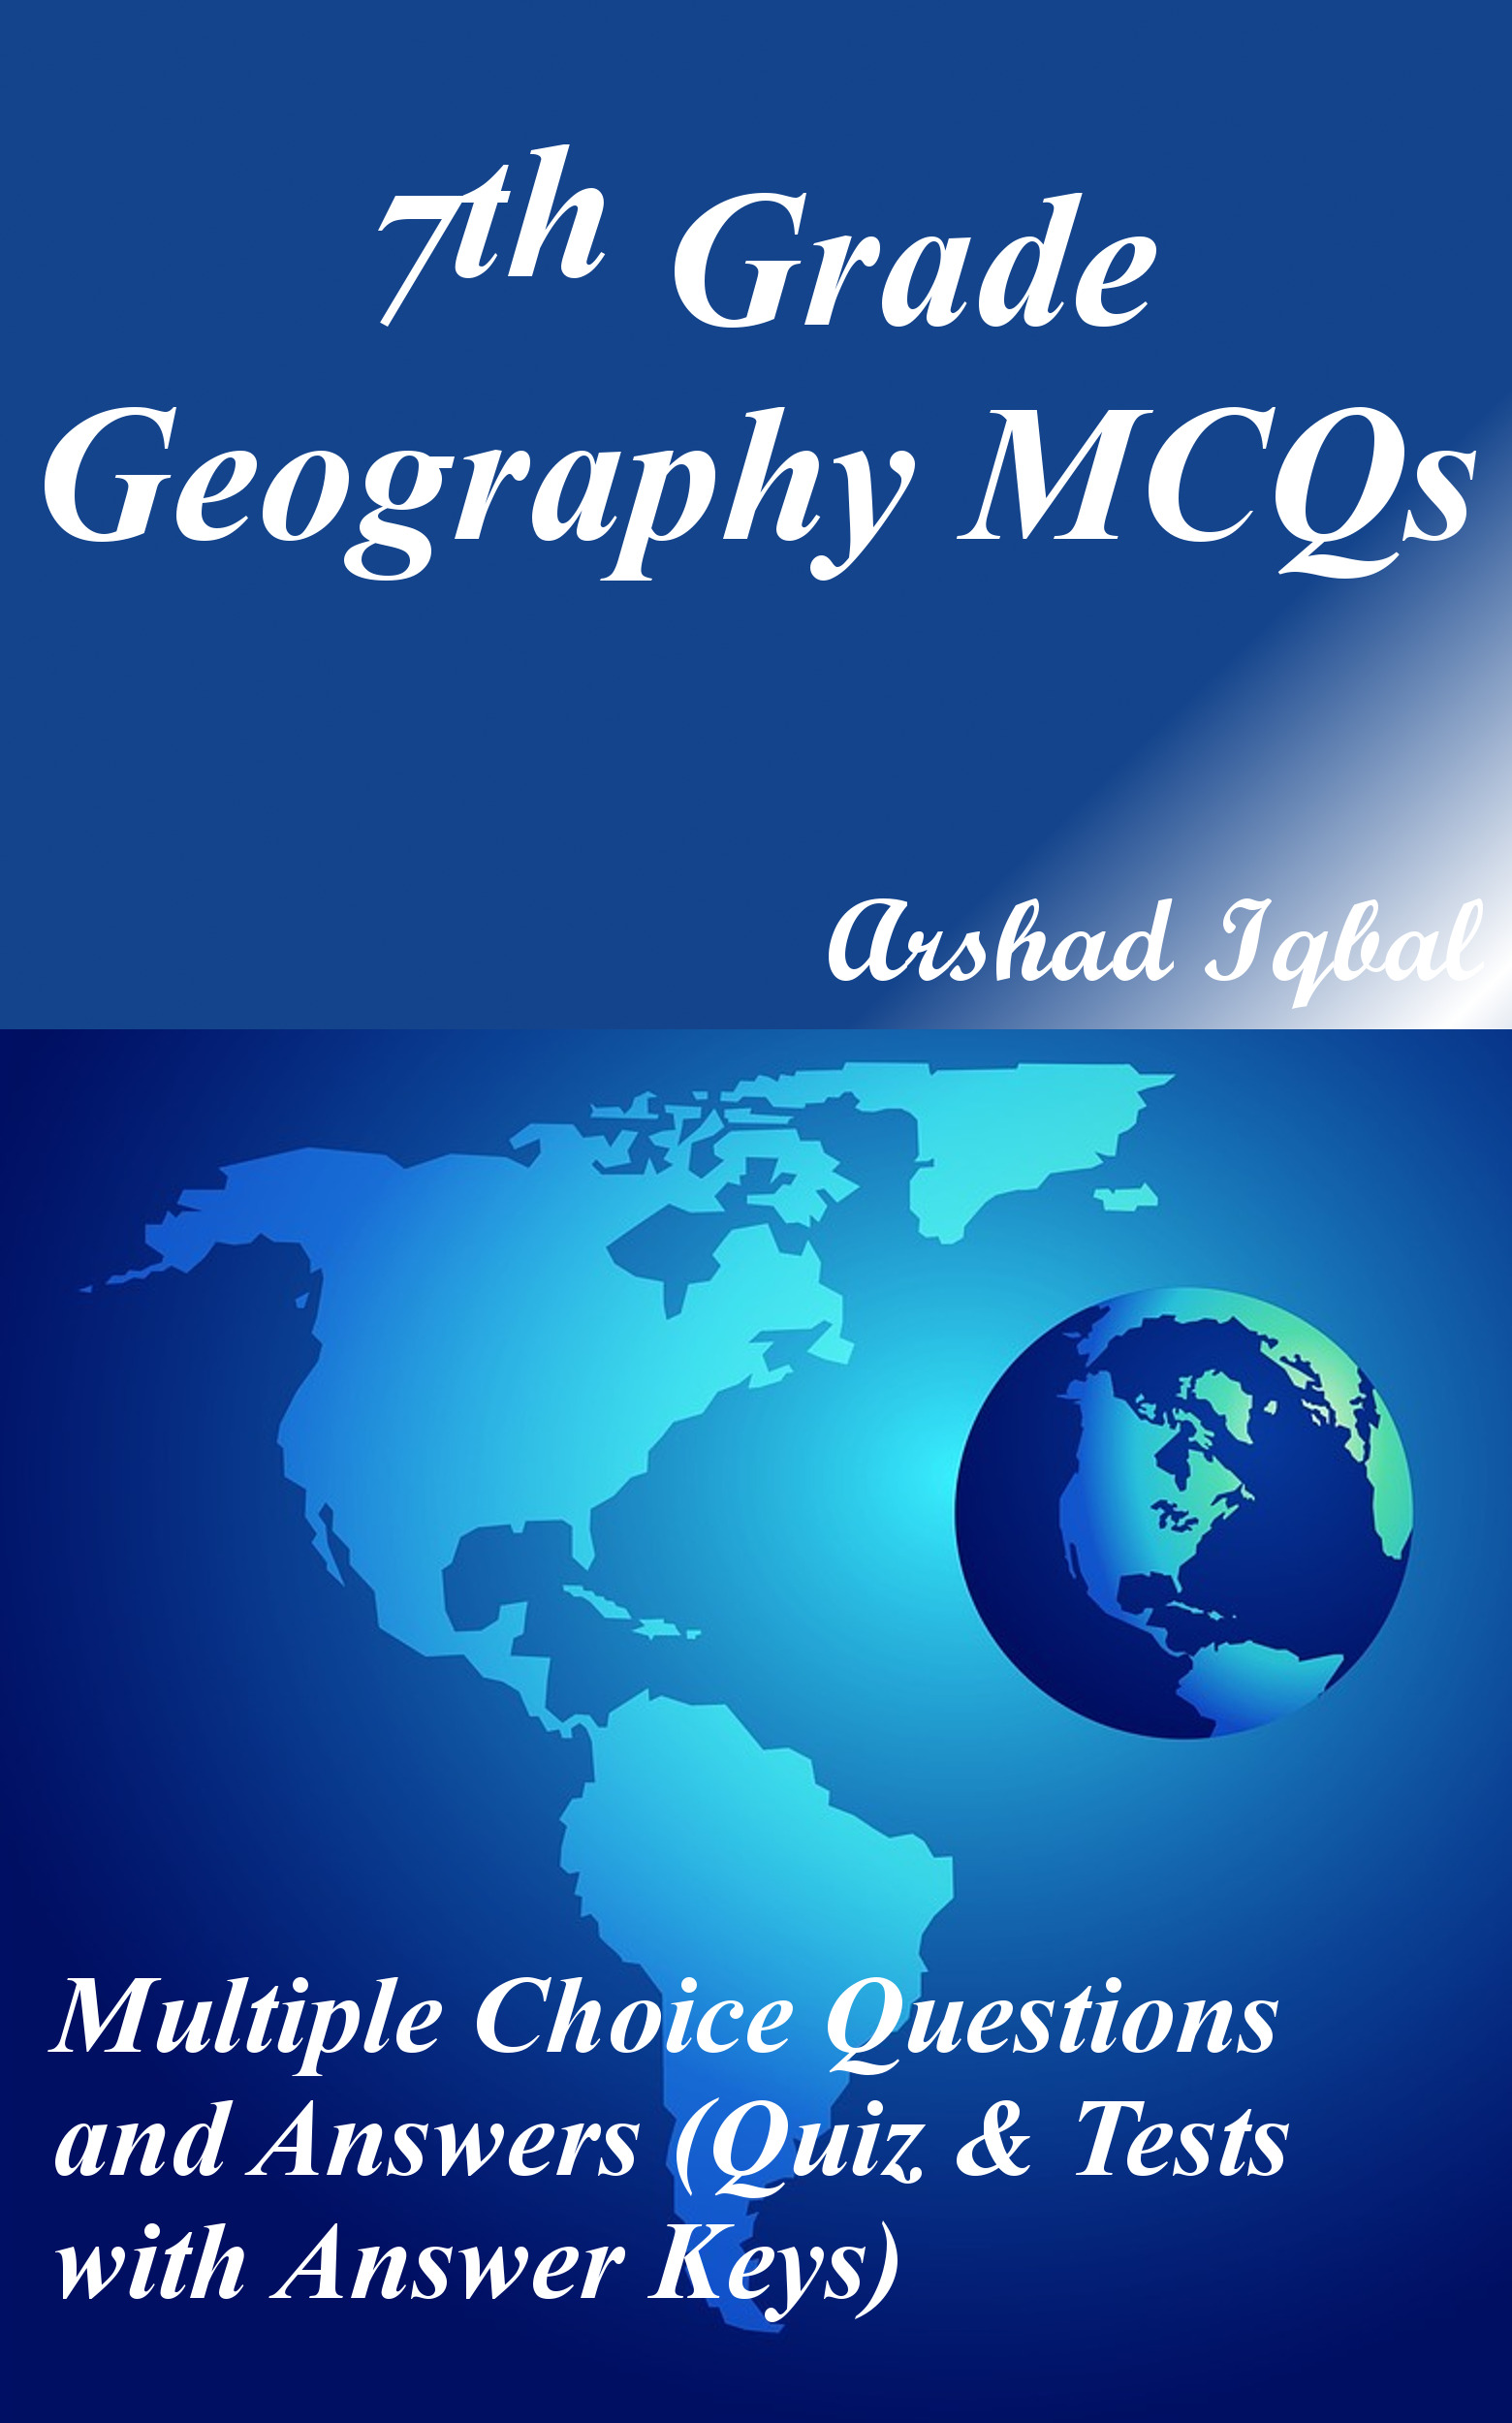 Grade 7 Geography MCQs: Multiple Choice Questions and Answers (Quiz & Tests with Answer Keys)